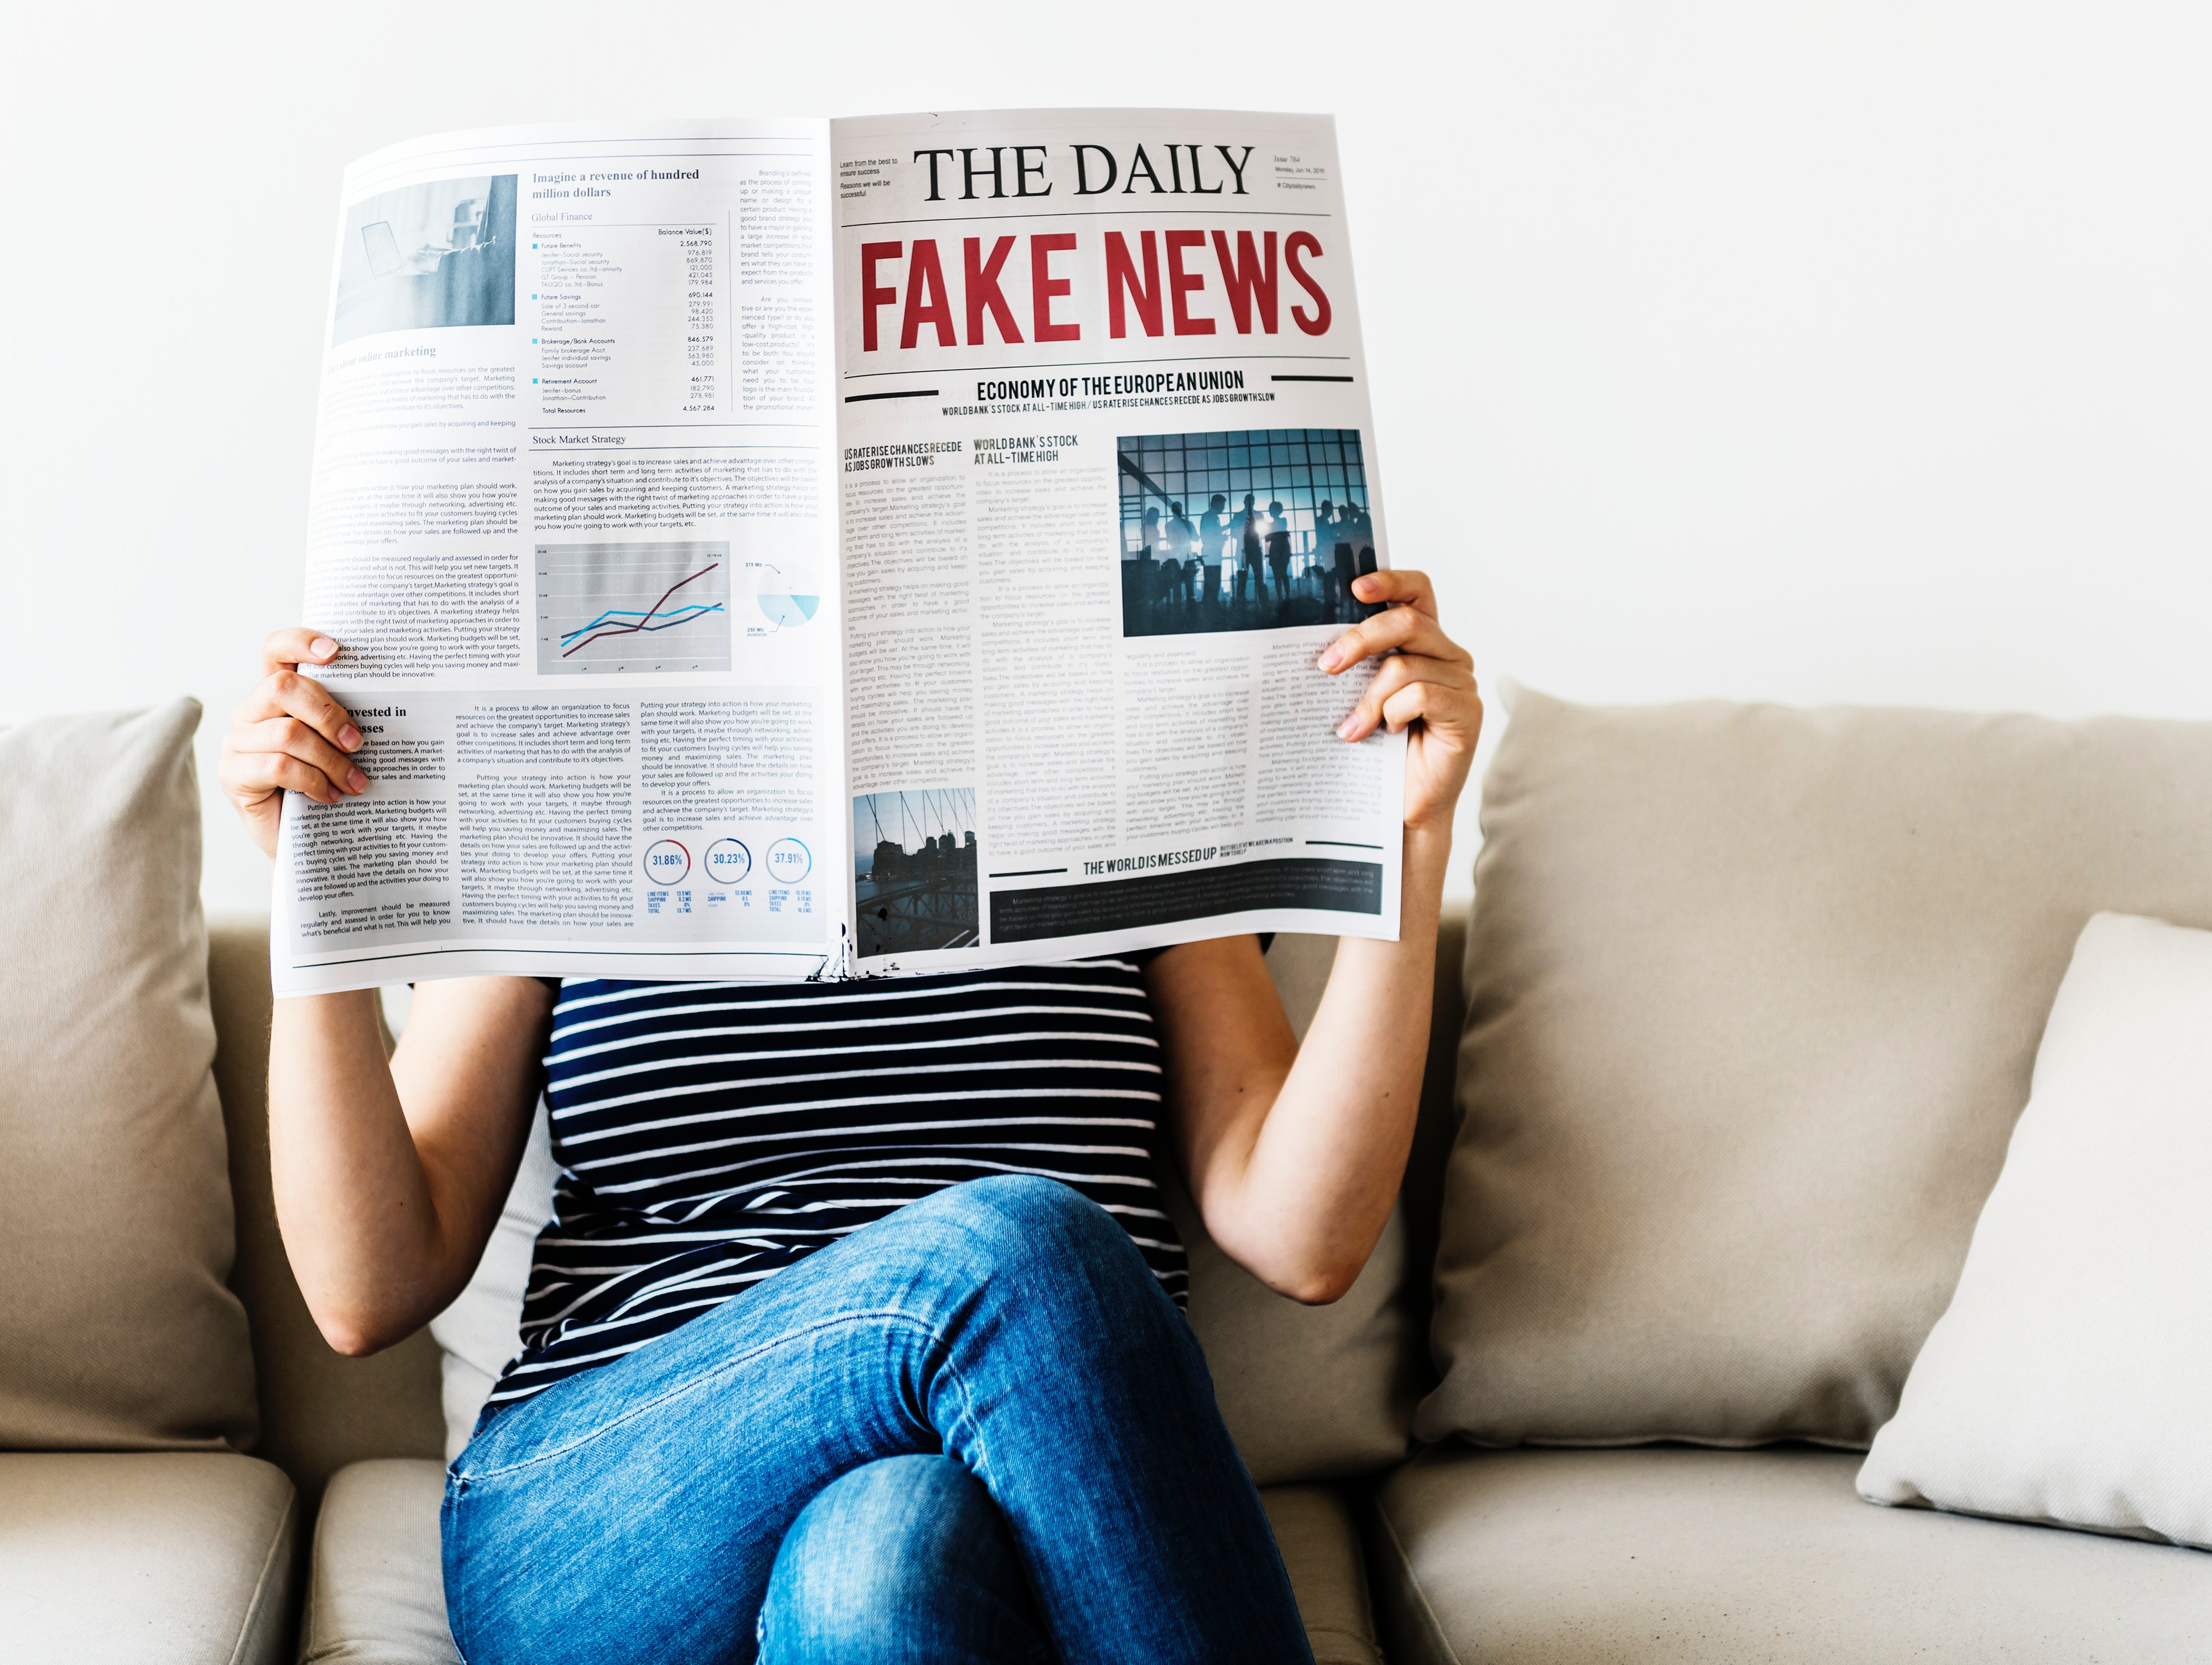 Person reading newspaper with story title Fake news